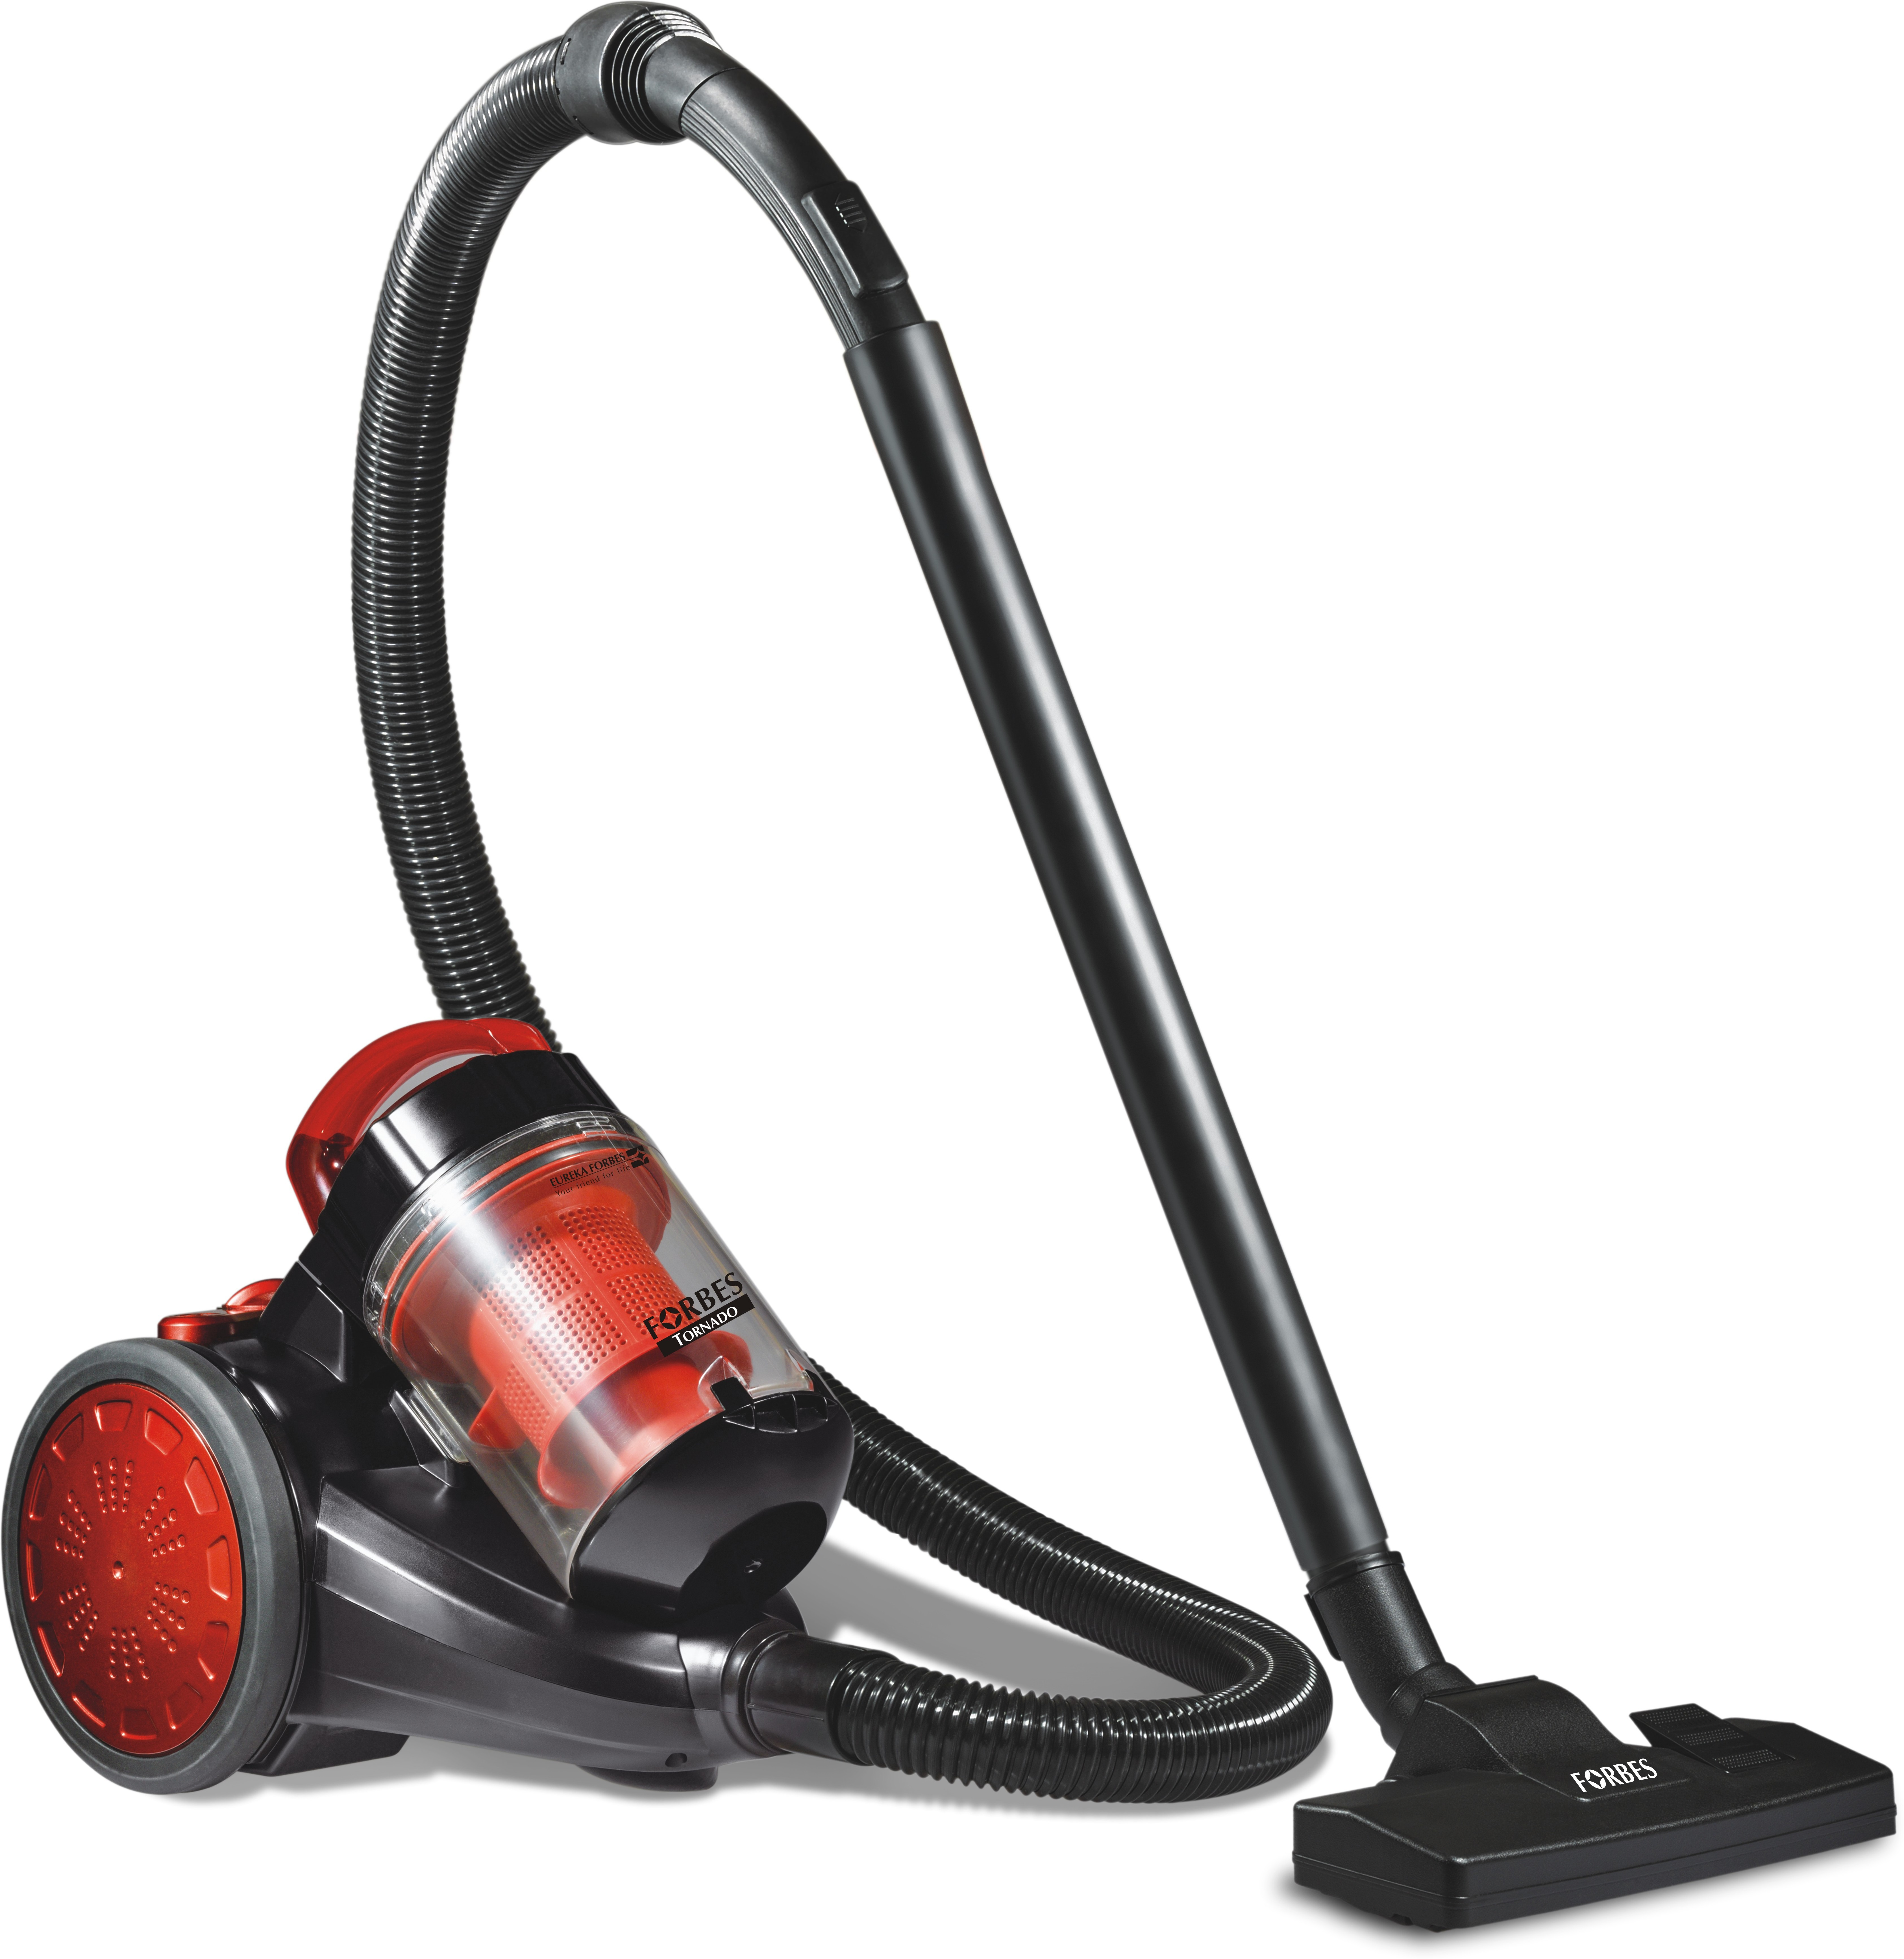 Eureka Forbes Tornado Dry Vacuum Cleaner Available At